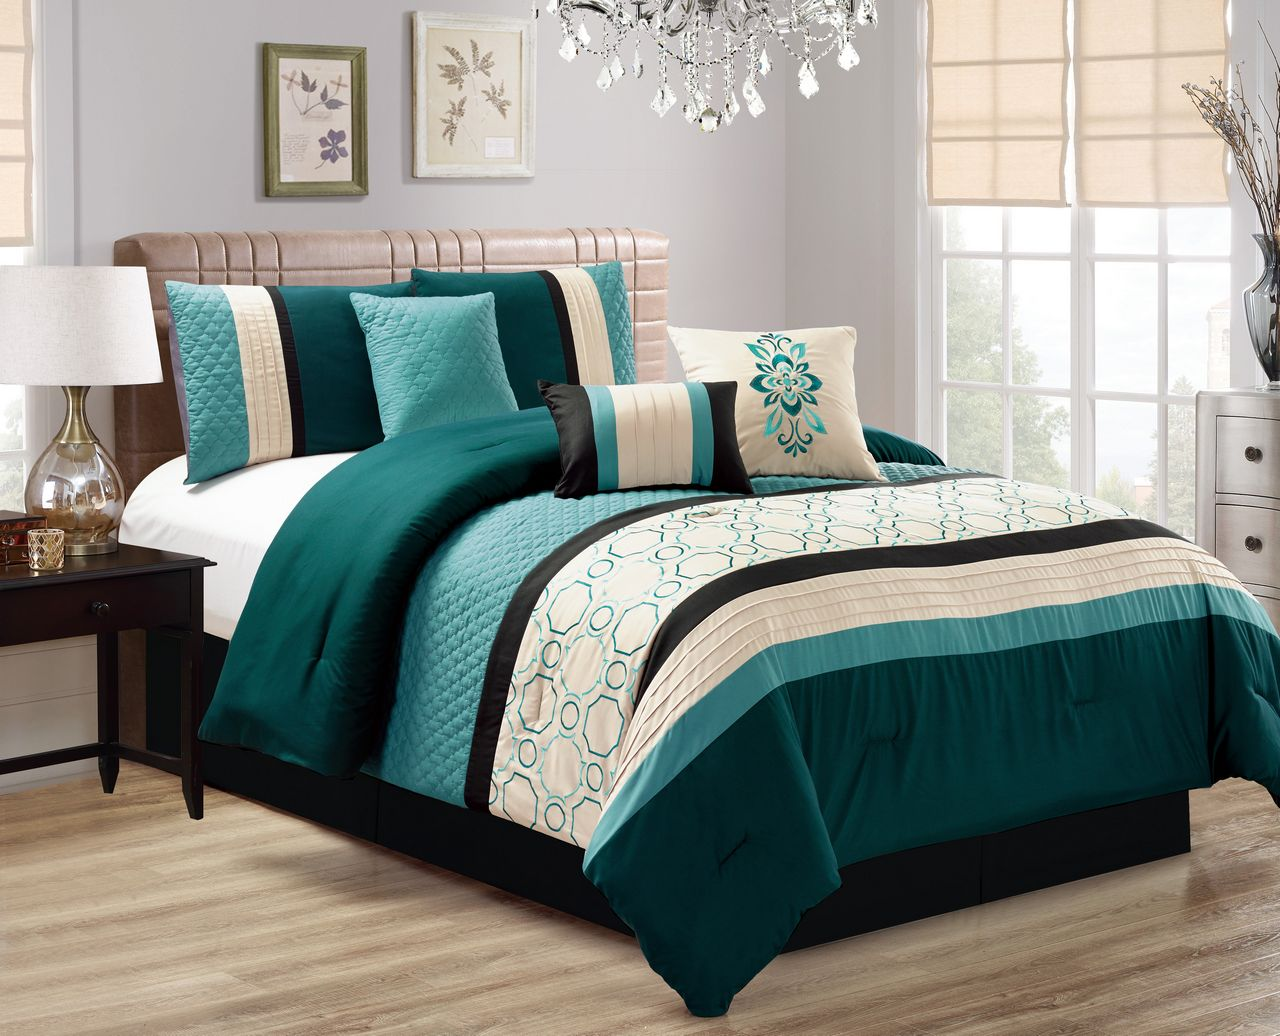 Piece Quilted Geometric Embroidered TealIvoryBlack Comforter Set - Black and teal comforter sets